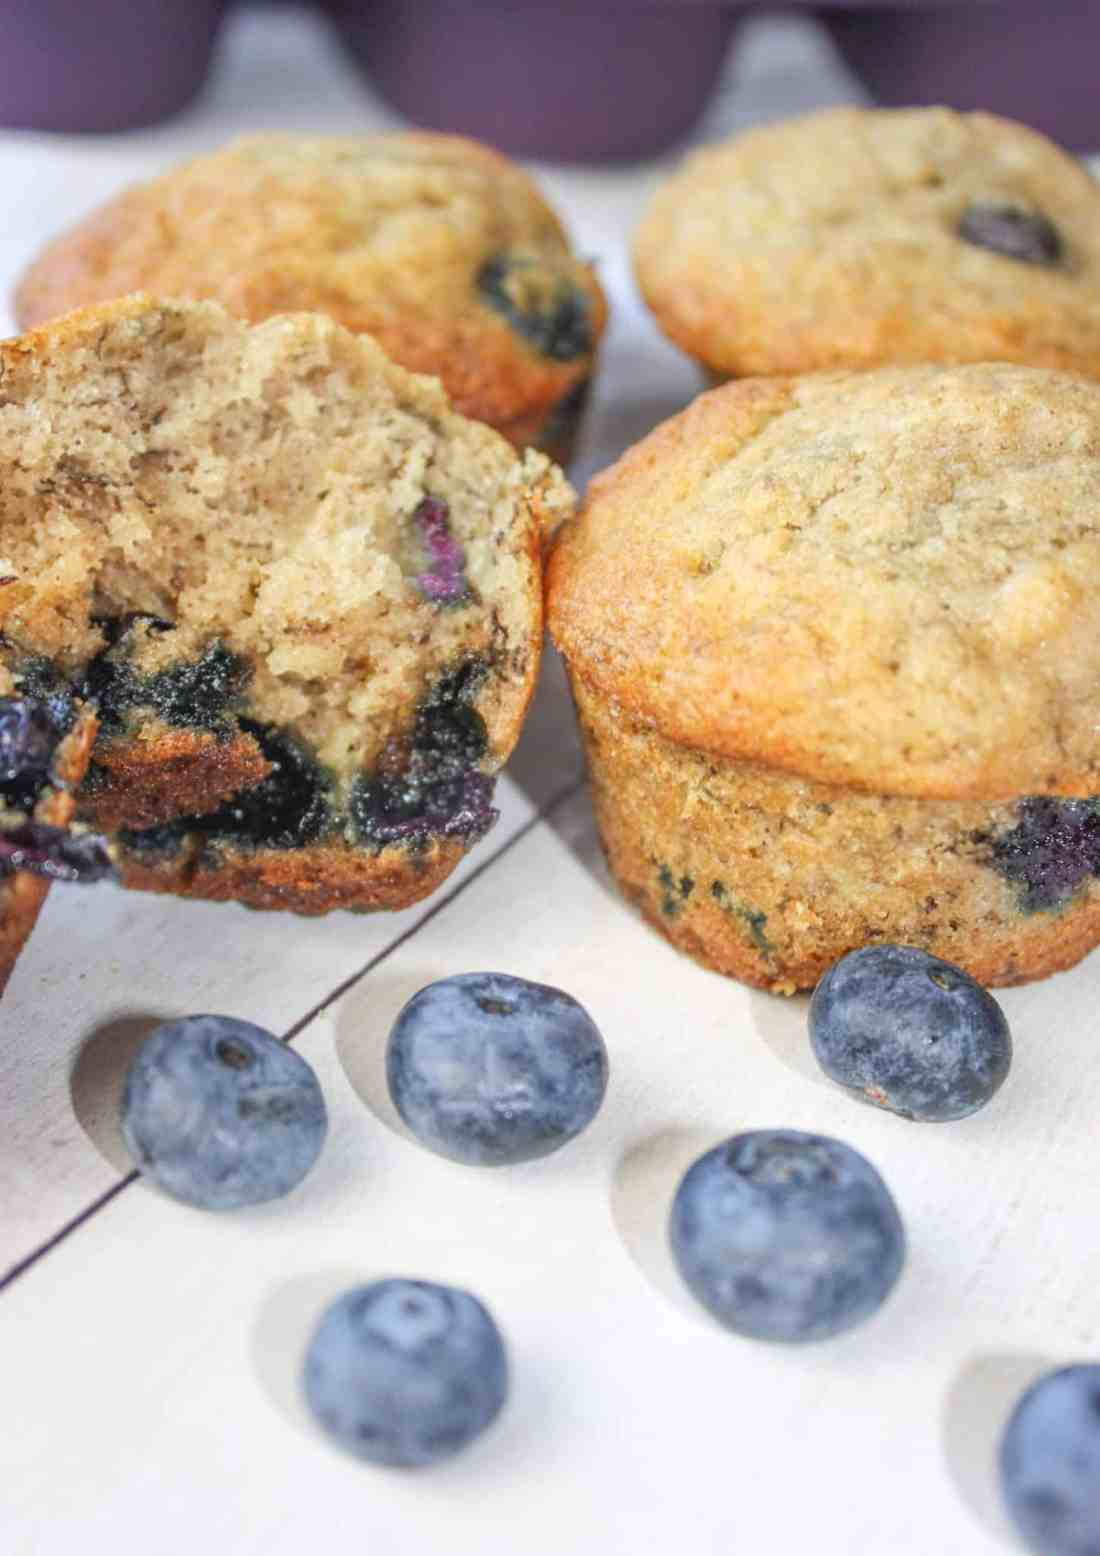 Blueberry Banana Muffins are a tasty seasonal twist on traditional banana muffins.  This moist and delicious gluten free snack is loaded with fresh blueberries.